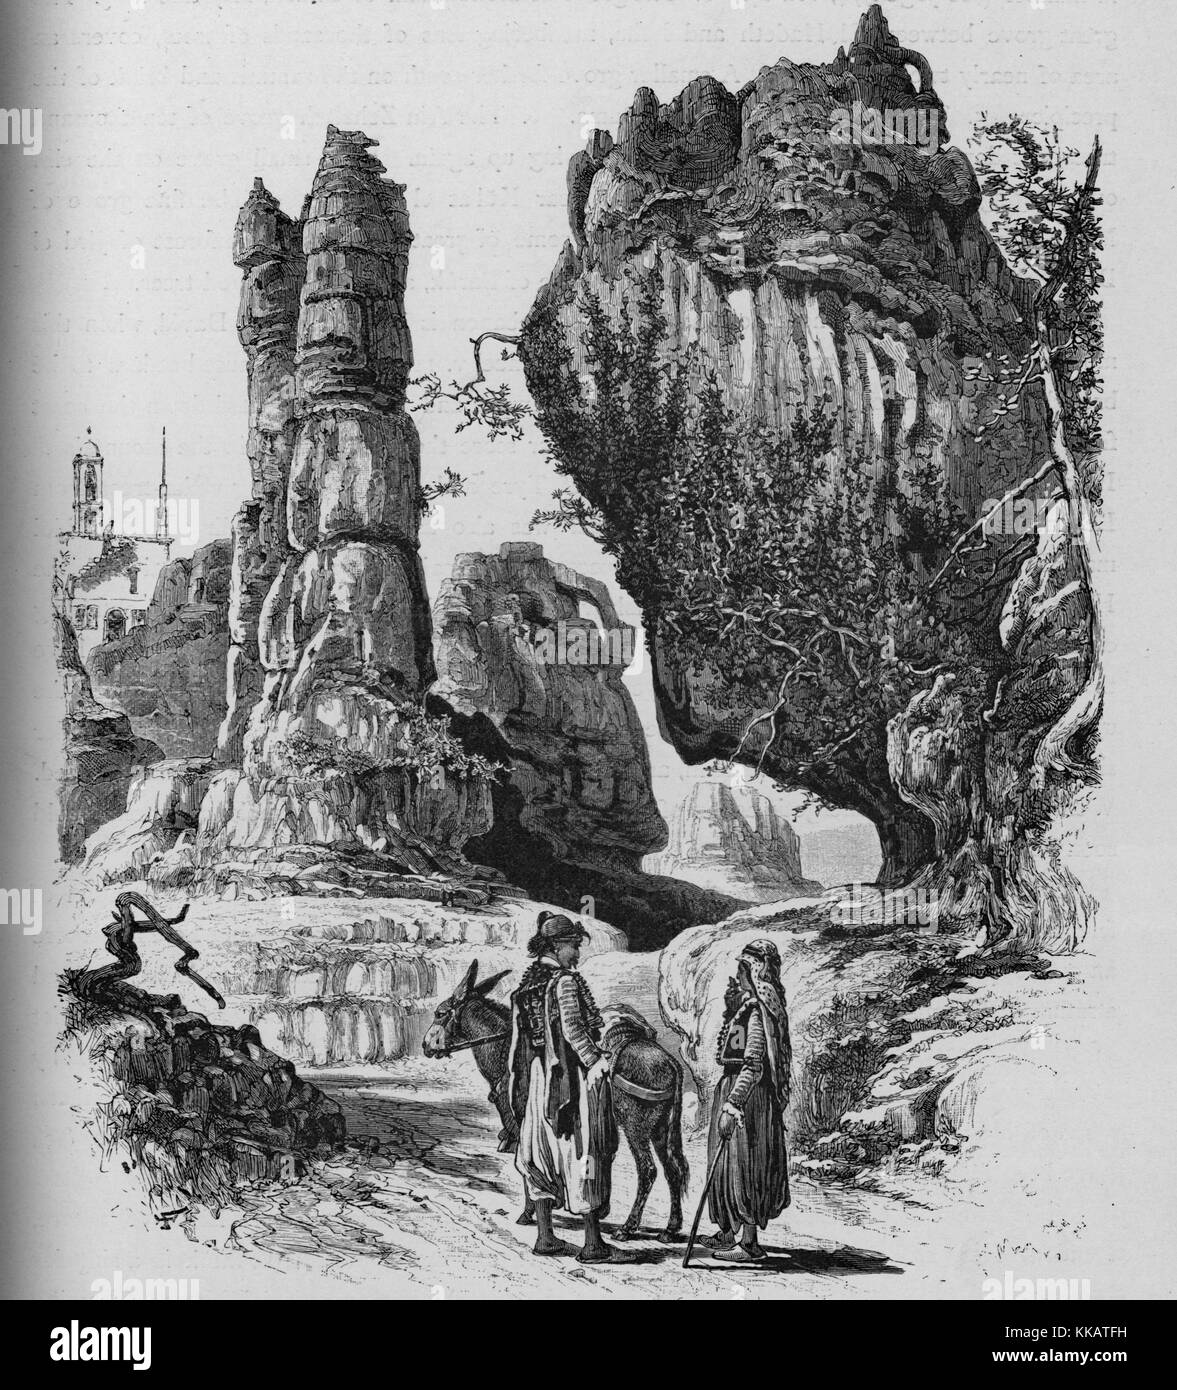 An engraving depicting the limestone formations in Ajaltoun, the belfry of the Convent of Ajaltoun is seen in the - Stock Image